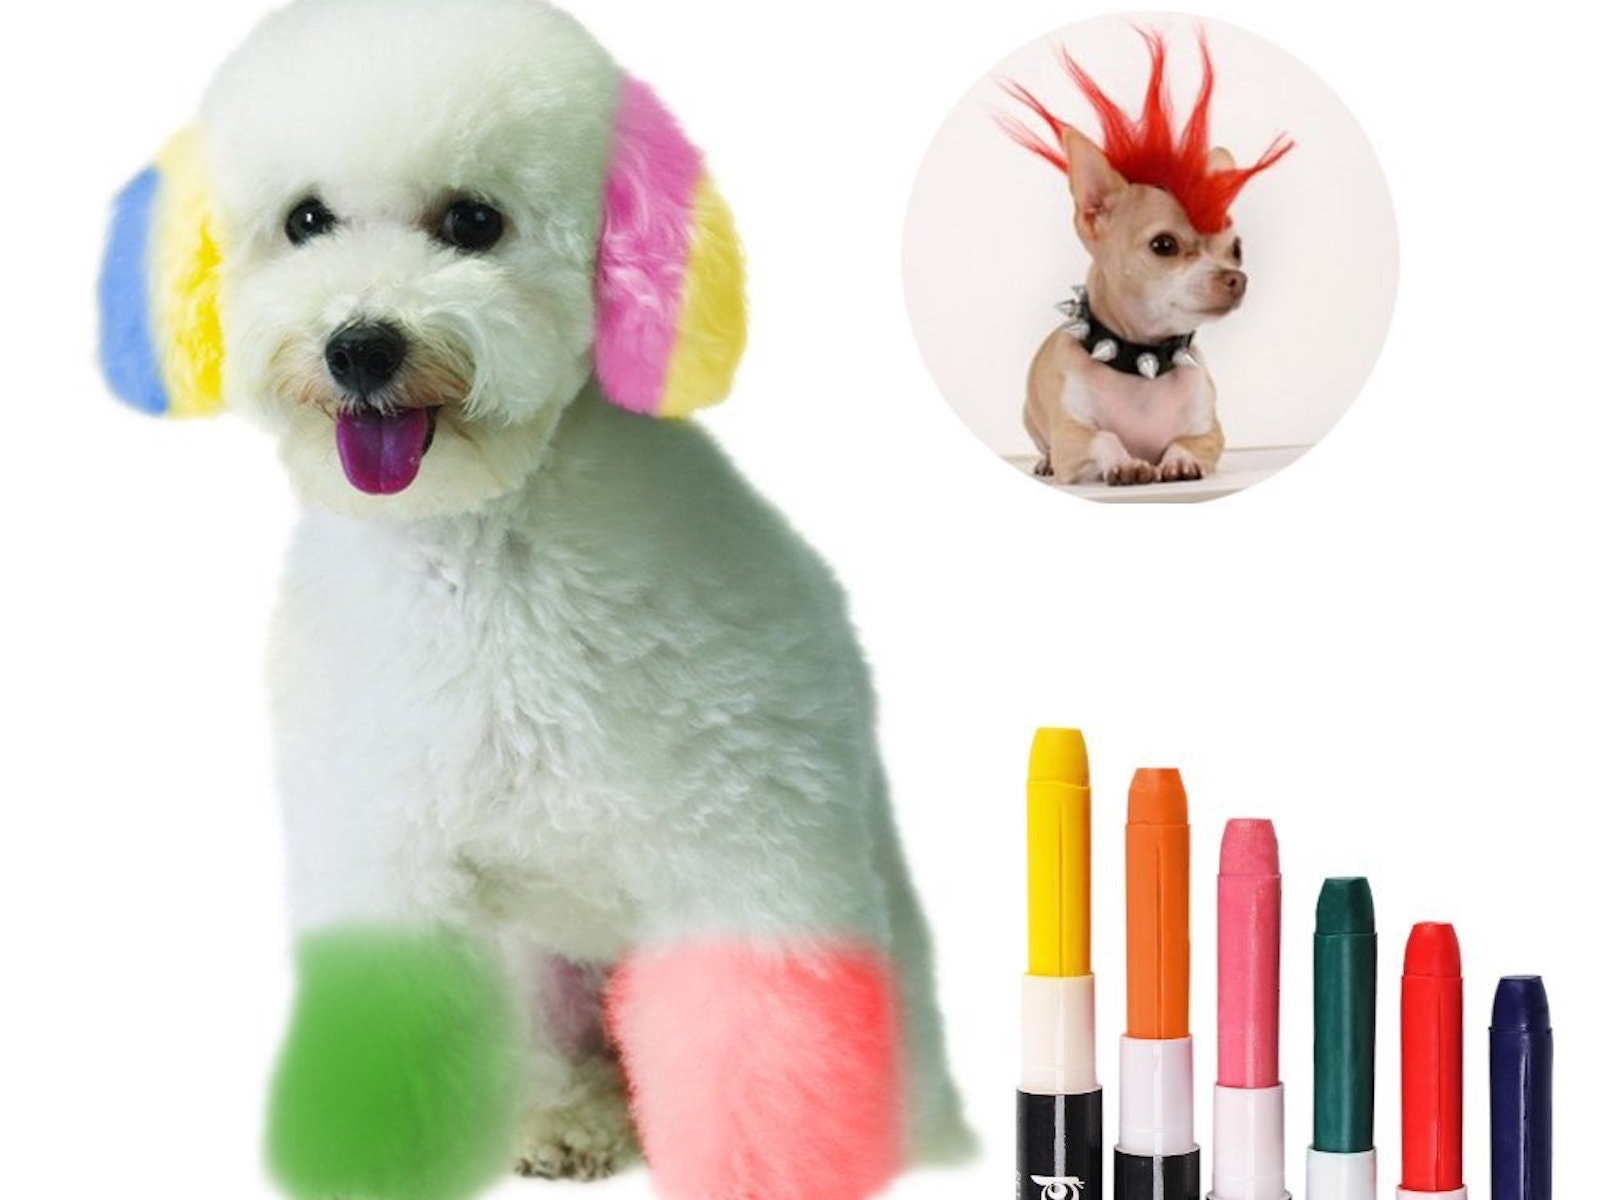 These pens for giving your dog the